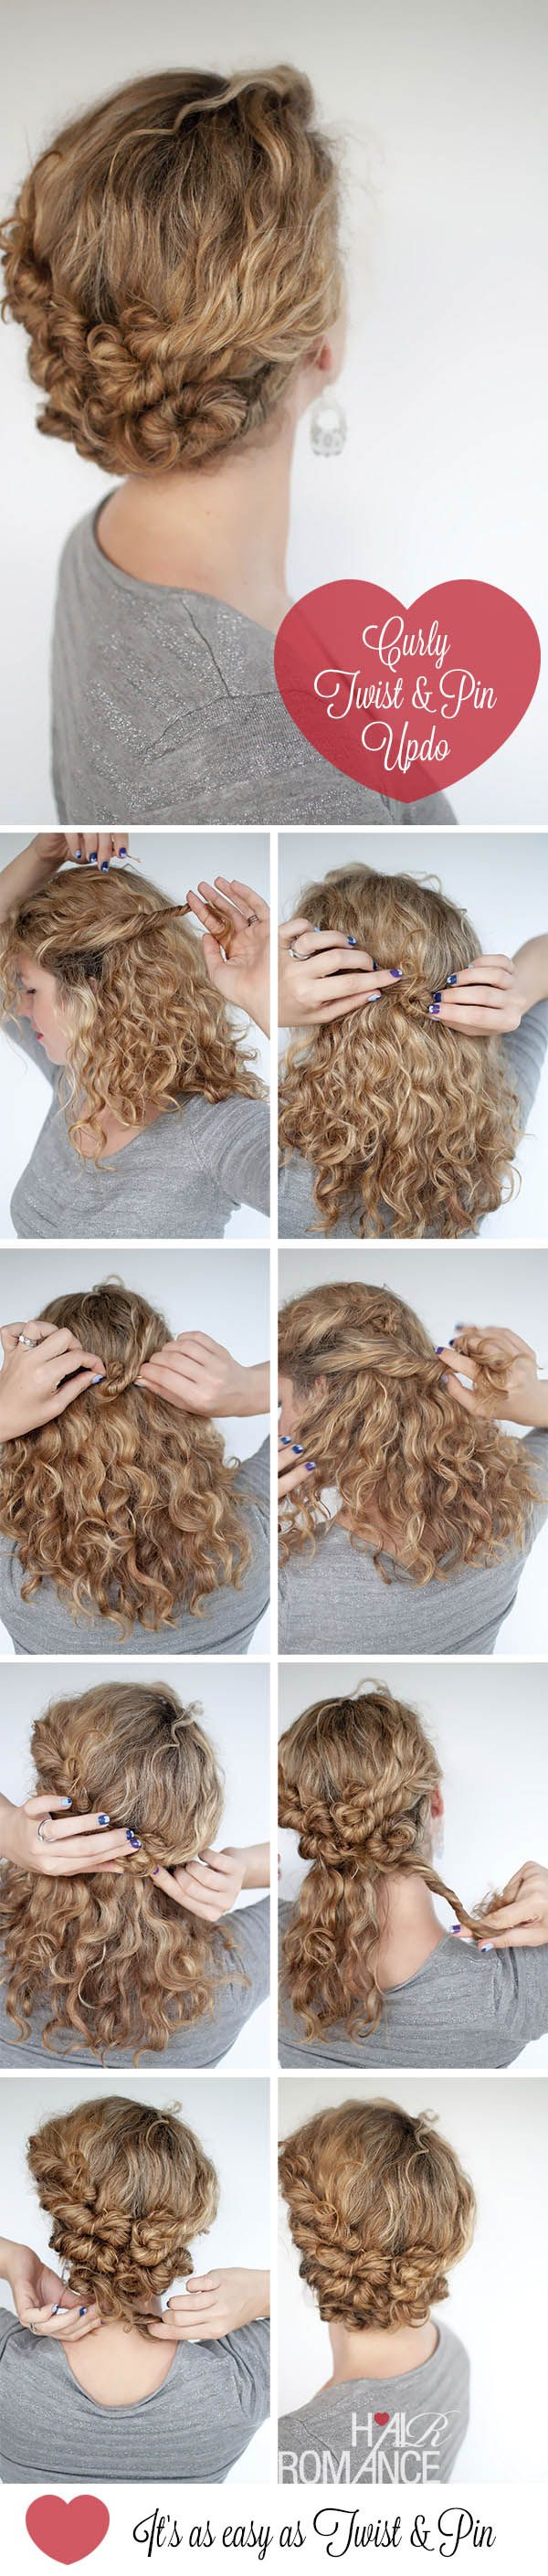 Easy Travel Hairstyles How To Twist And Pin Updo Her Packing List Hair Styles Hair Romance Curly Hair Styles